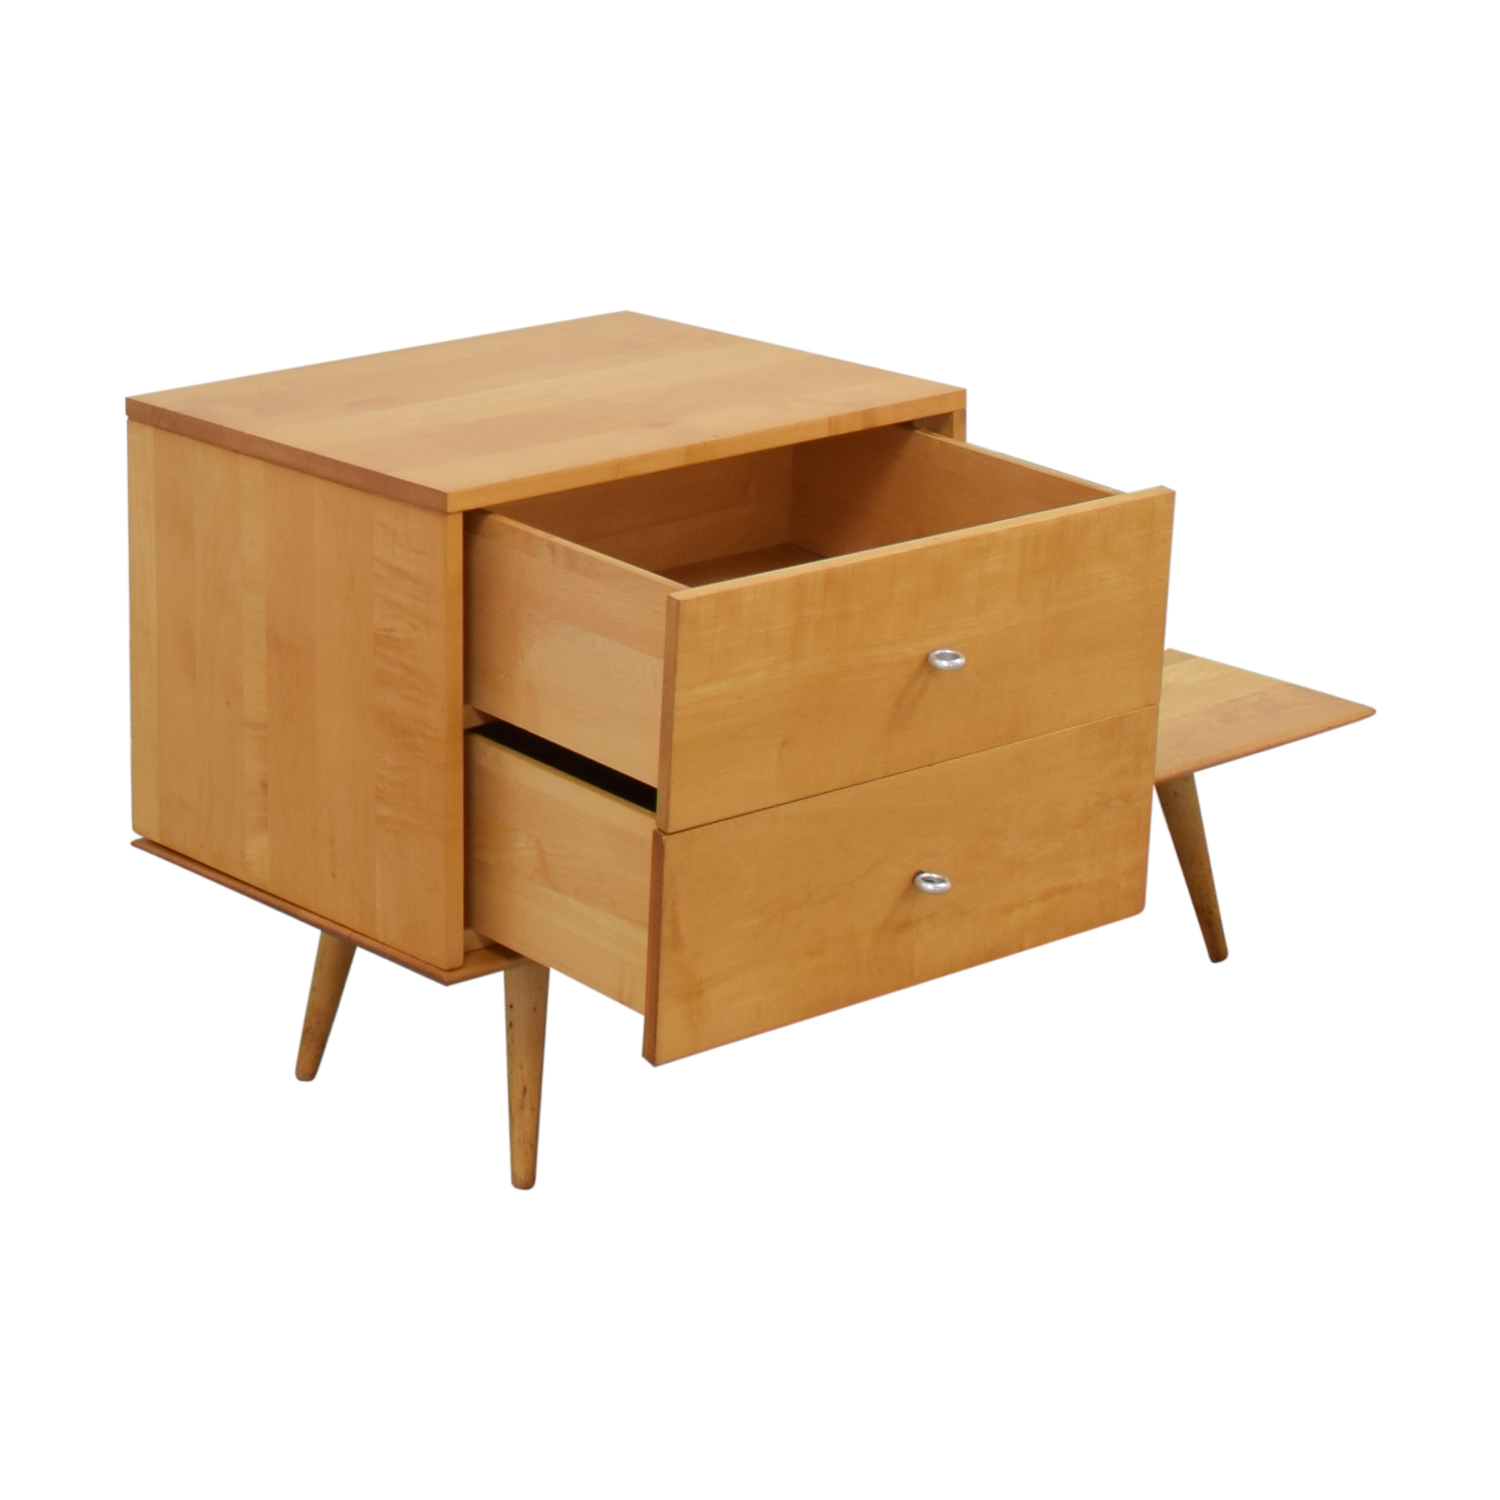 Paul McCobb Planner Group Bench with Cabinet / Storage